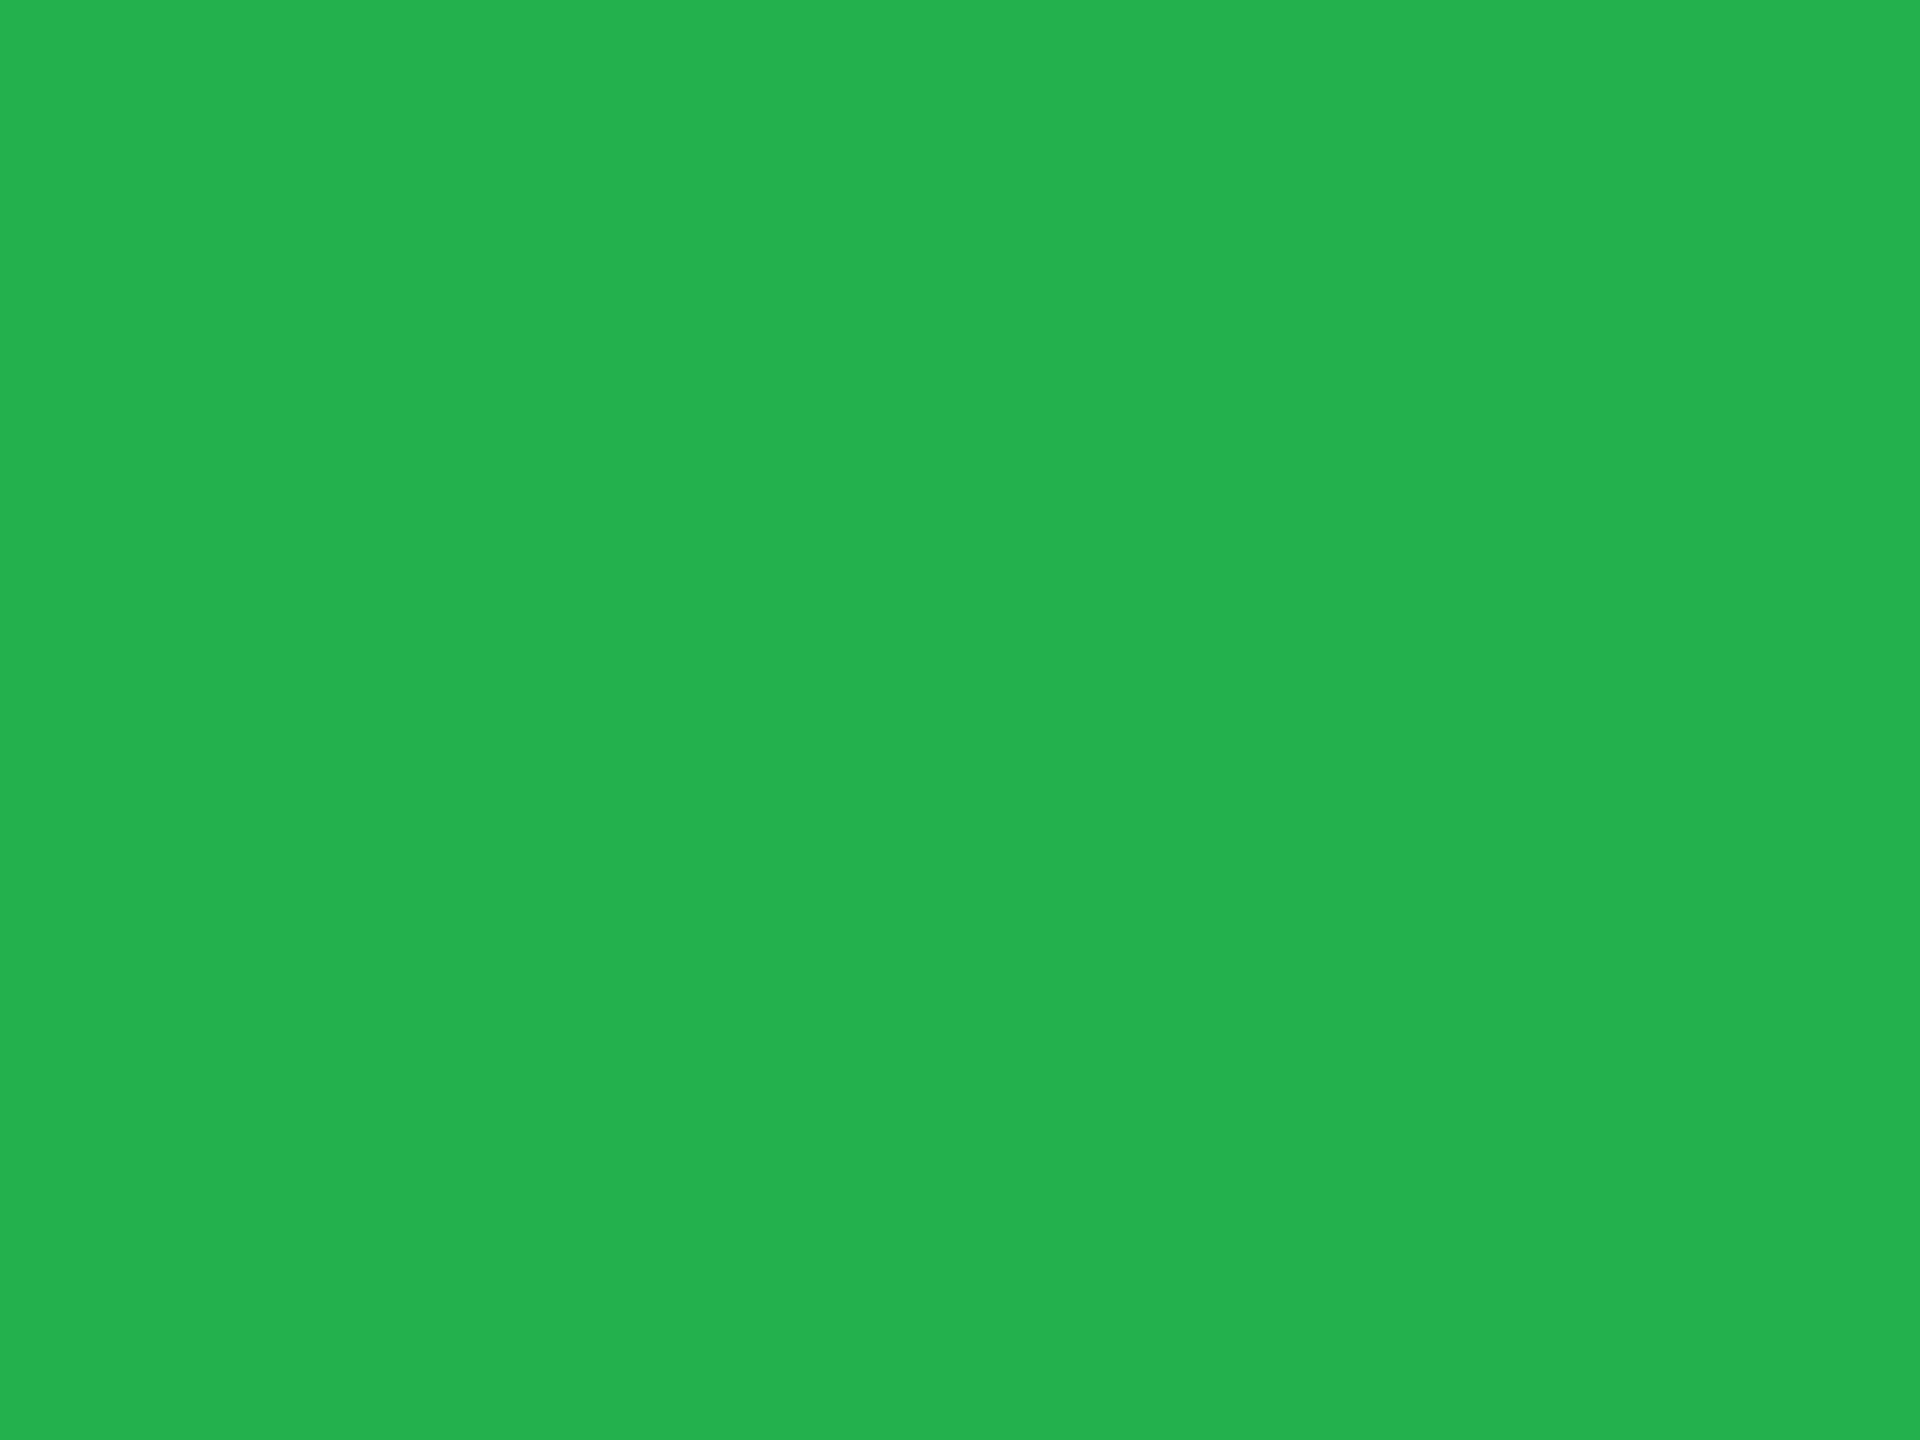 1920x1440 Solid Green Background